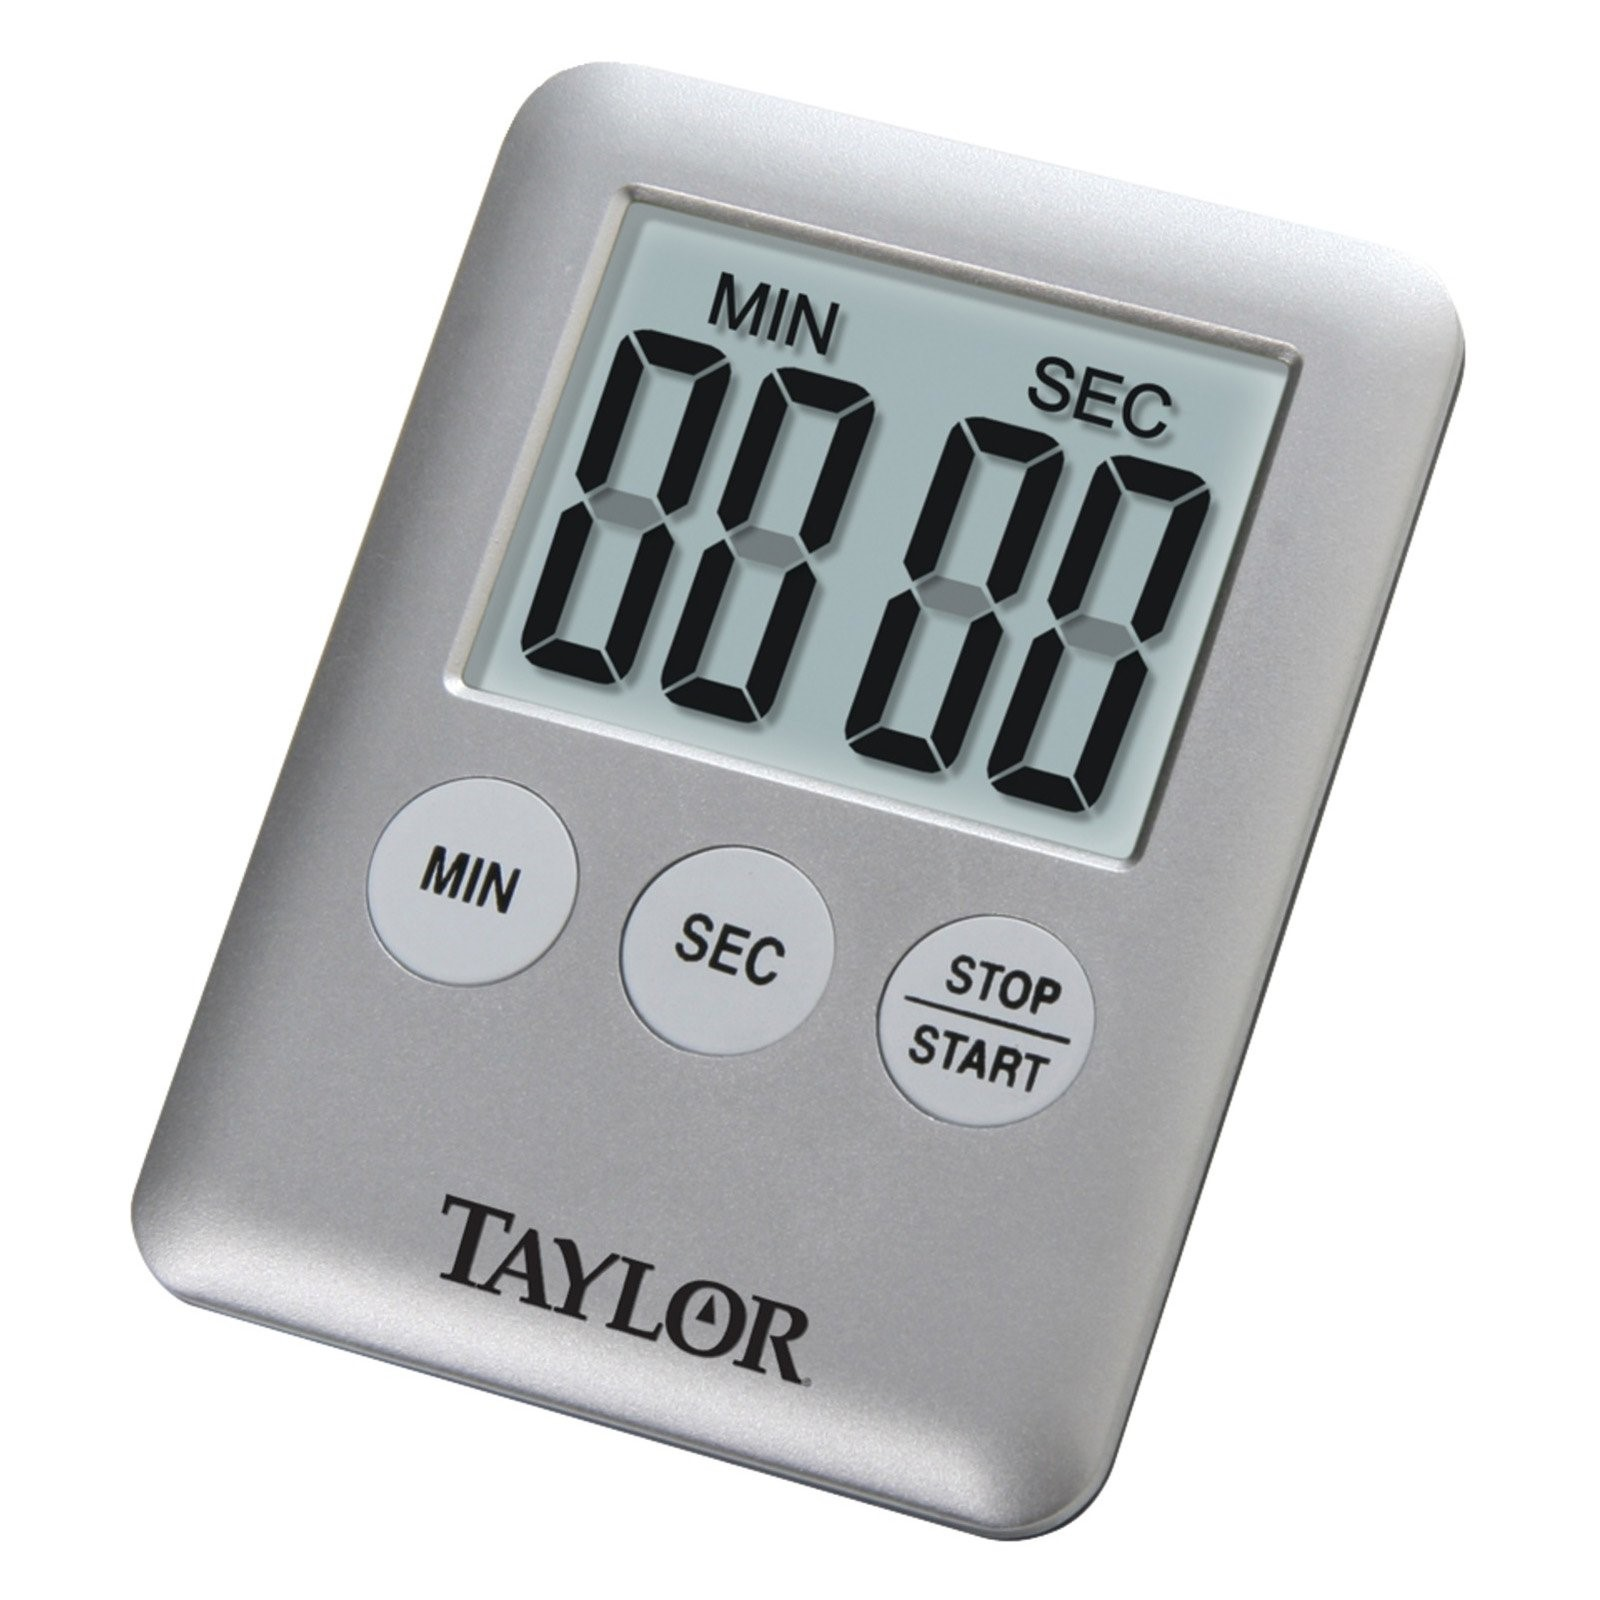 Taylor 5842-9 Mini Digital Kitchen Timer